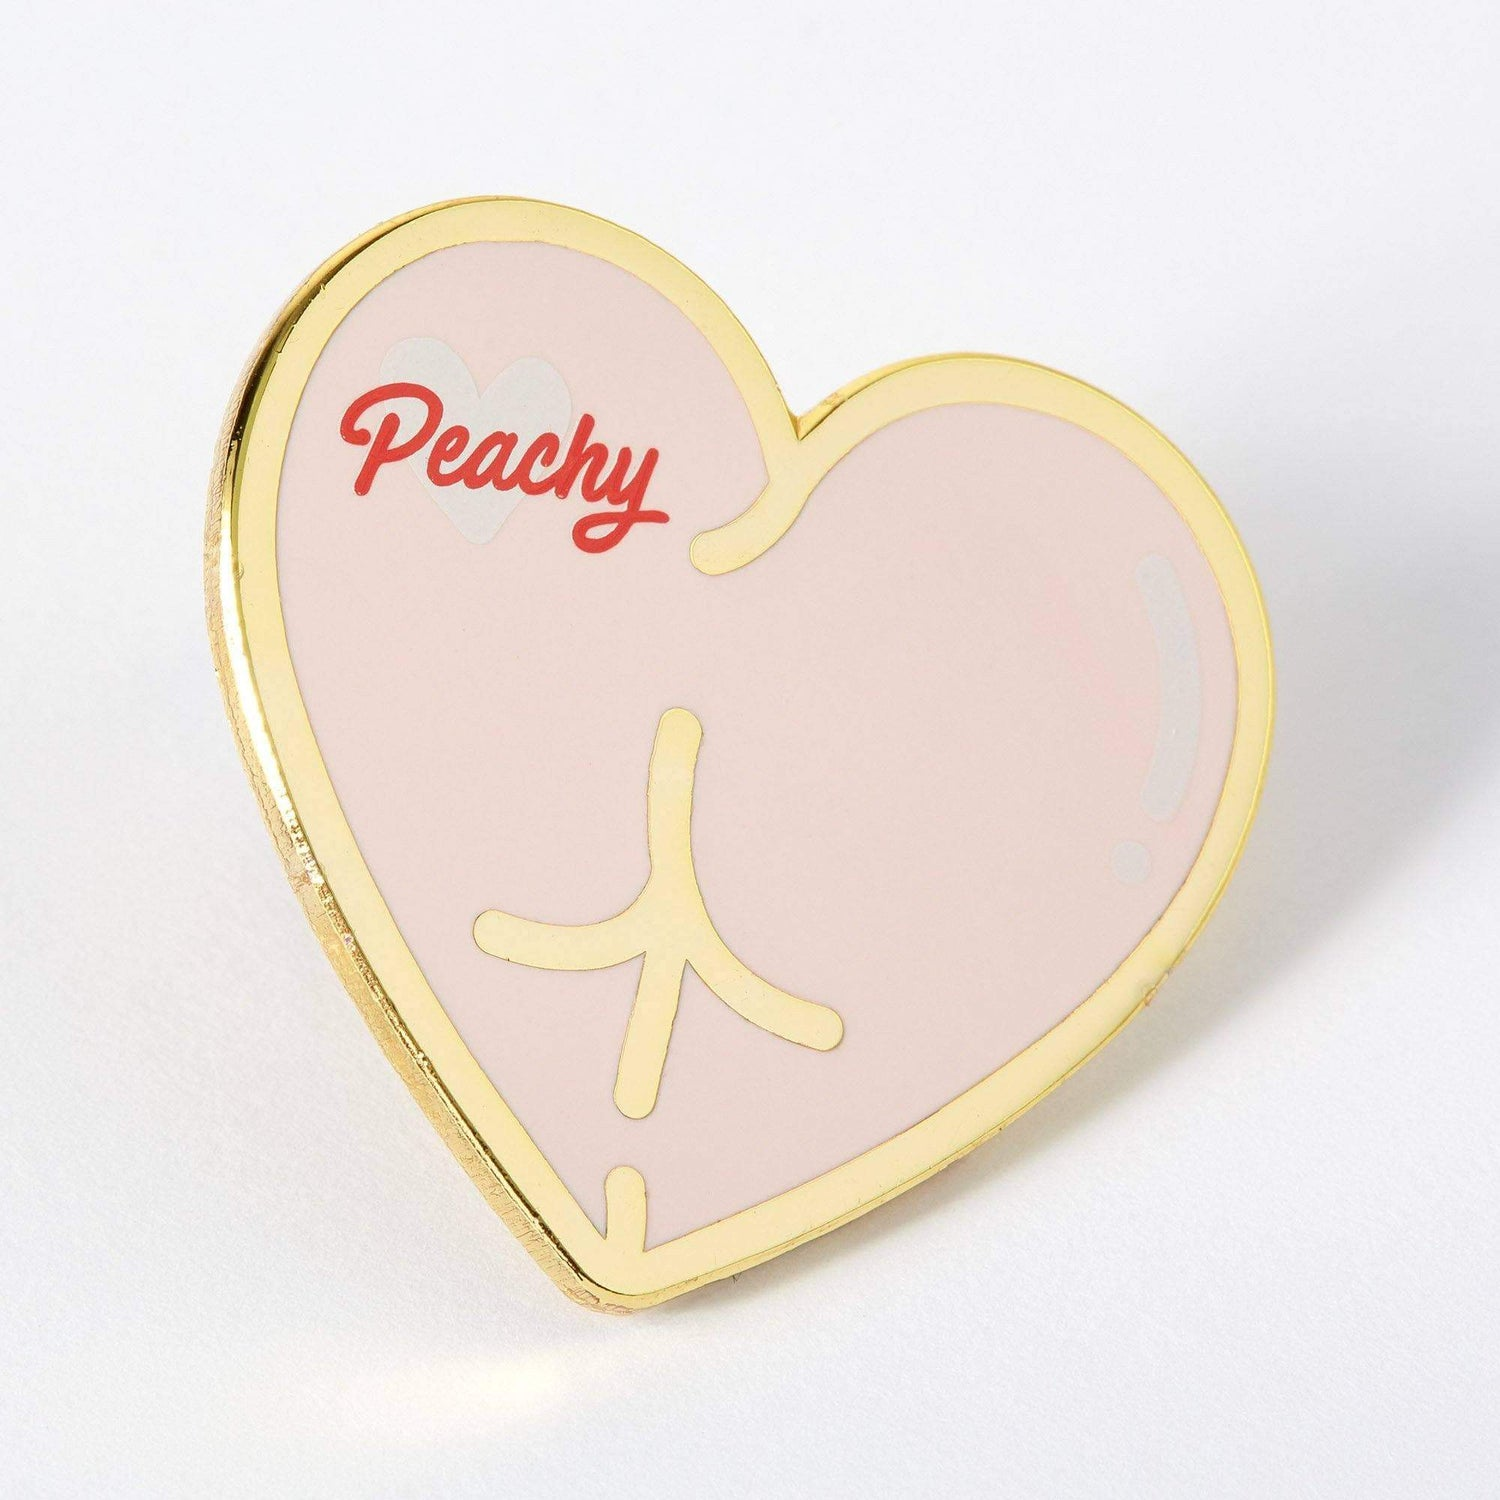 Punky Pins Peachy Bum Enamel Pin